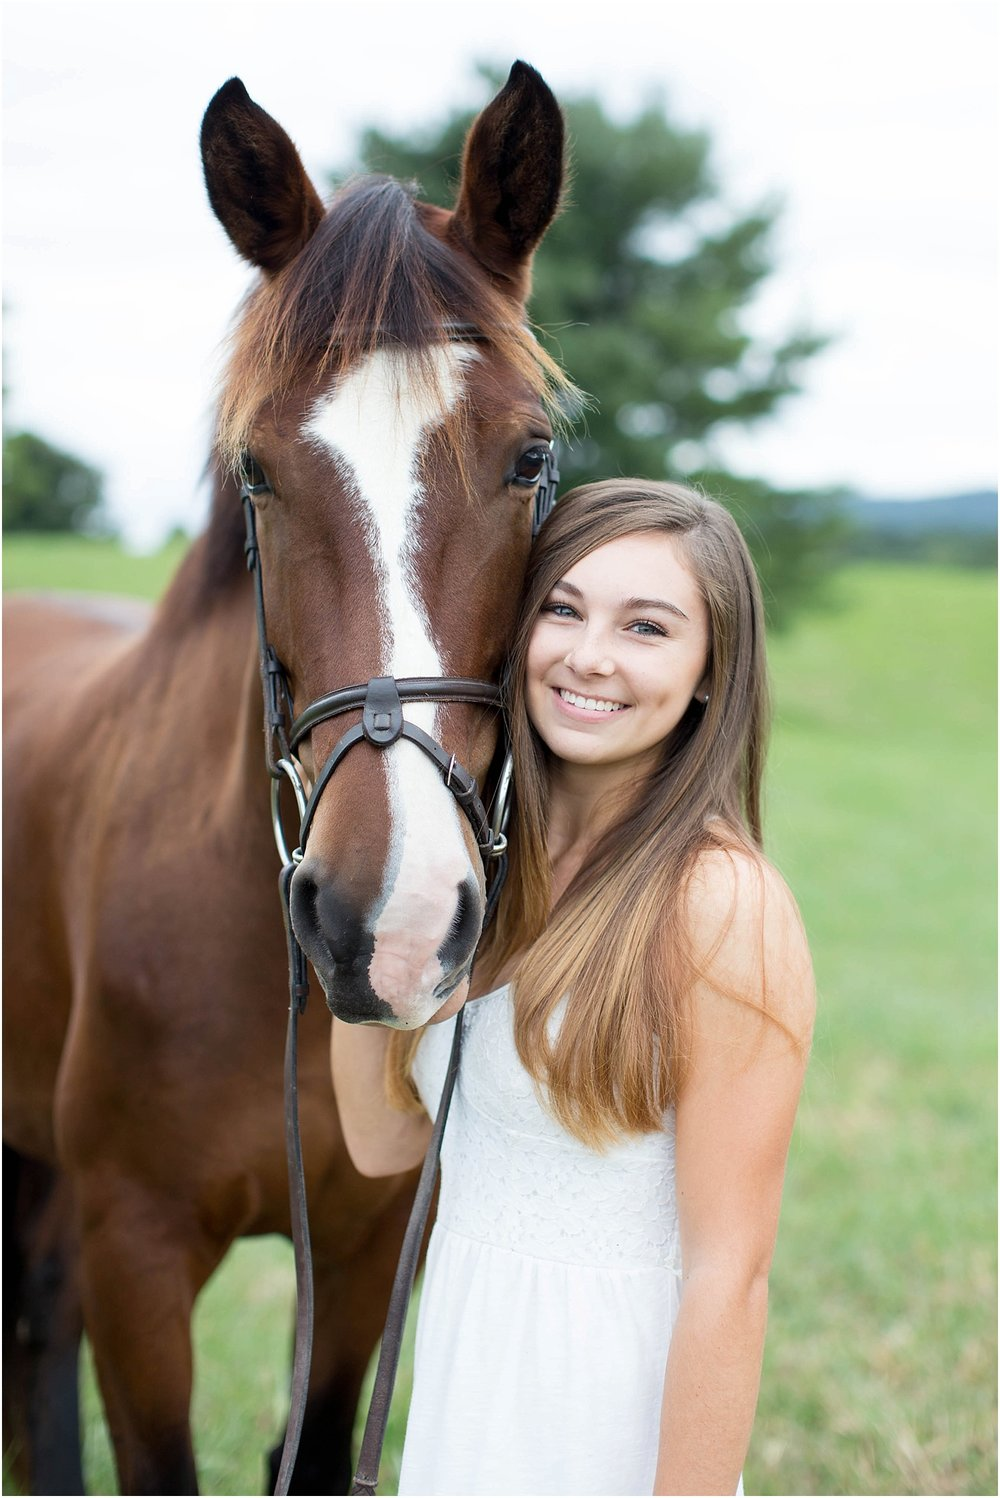 Senior Portrait Session | Ashley Powell Photography | Roanoke, VA Photographer